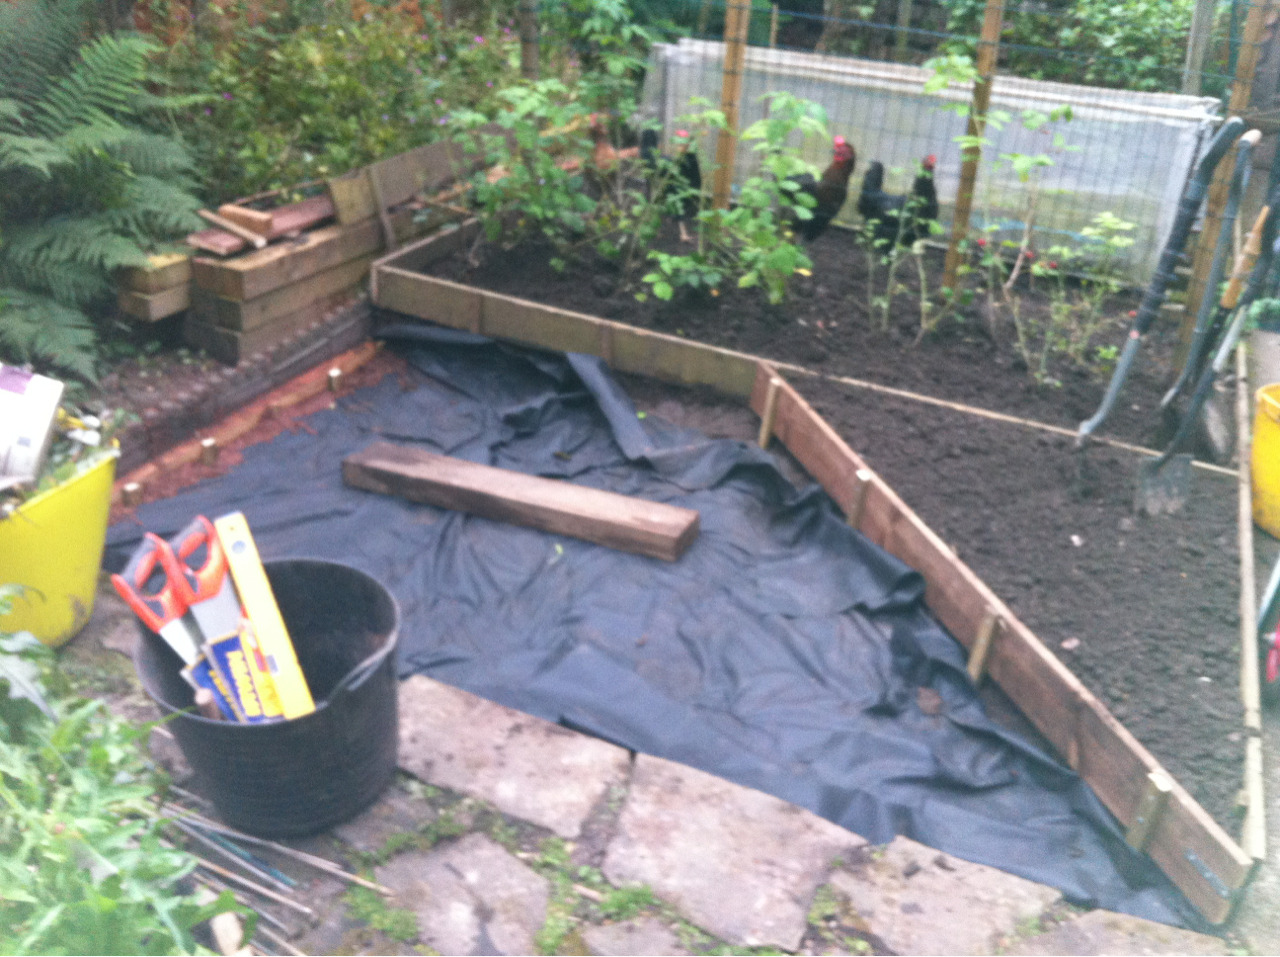 Preparations for the earth oven have started apace. Mr Greedy Gardener doesn't do things by halves and I'm really busy with some gainful employment so he is doing all the labouring and I'm offering encouragement and aesthetic guidance from a safe distance. The raspberries have been relocated and the chickens excluded. The small triangular bed will be planted up later, probably with herbs. A double layer of weed proof membrane is on the soil and will be covered with gravel. The oven itself will sit to the left.